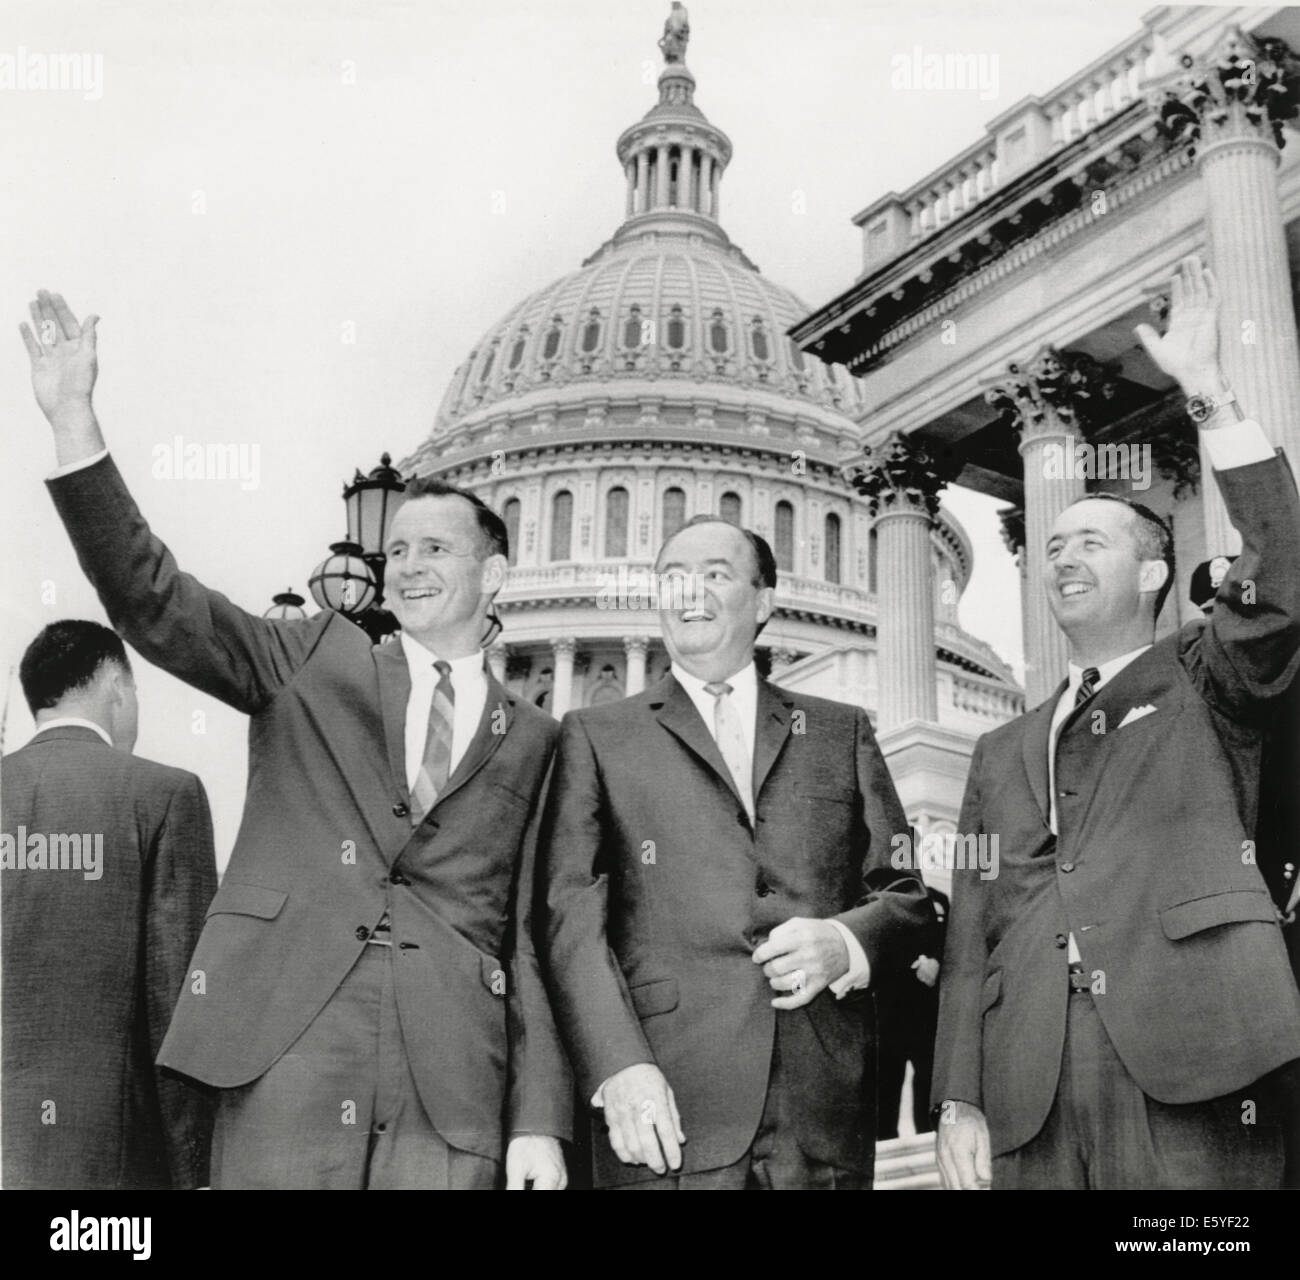 Astronauts Edward White II (L) and James McDivitt (R) with U.S. VP Hubert Humphrey on Steps of Capitol Building, - Stock Image